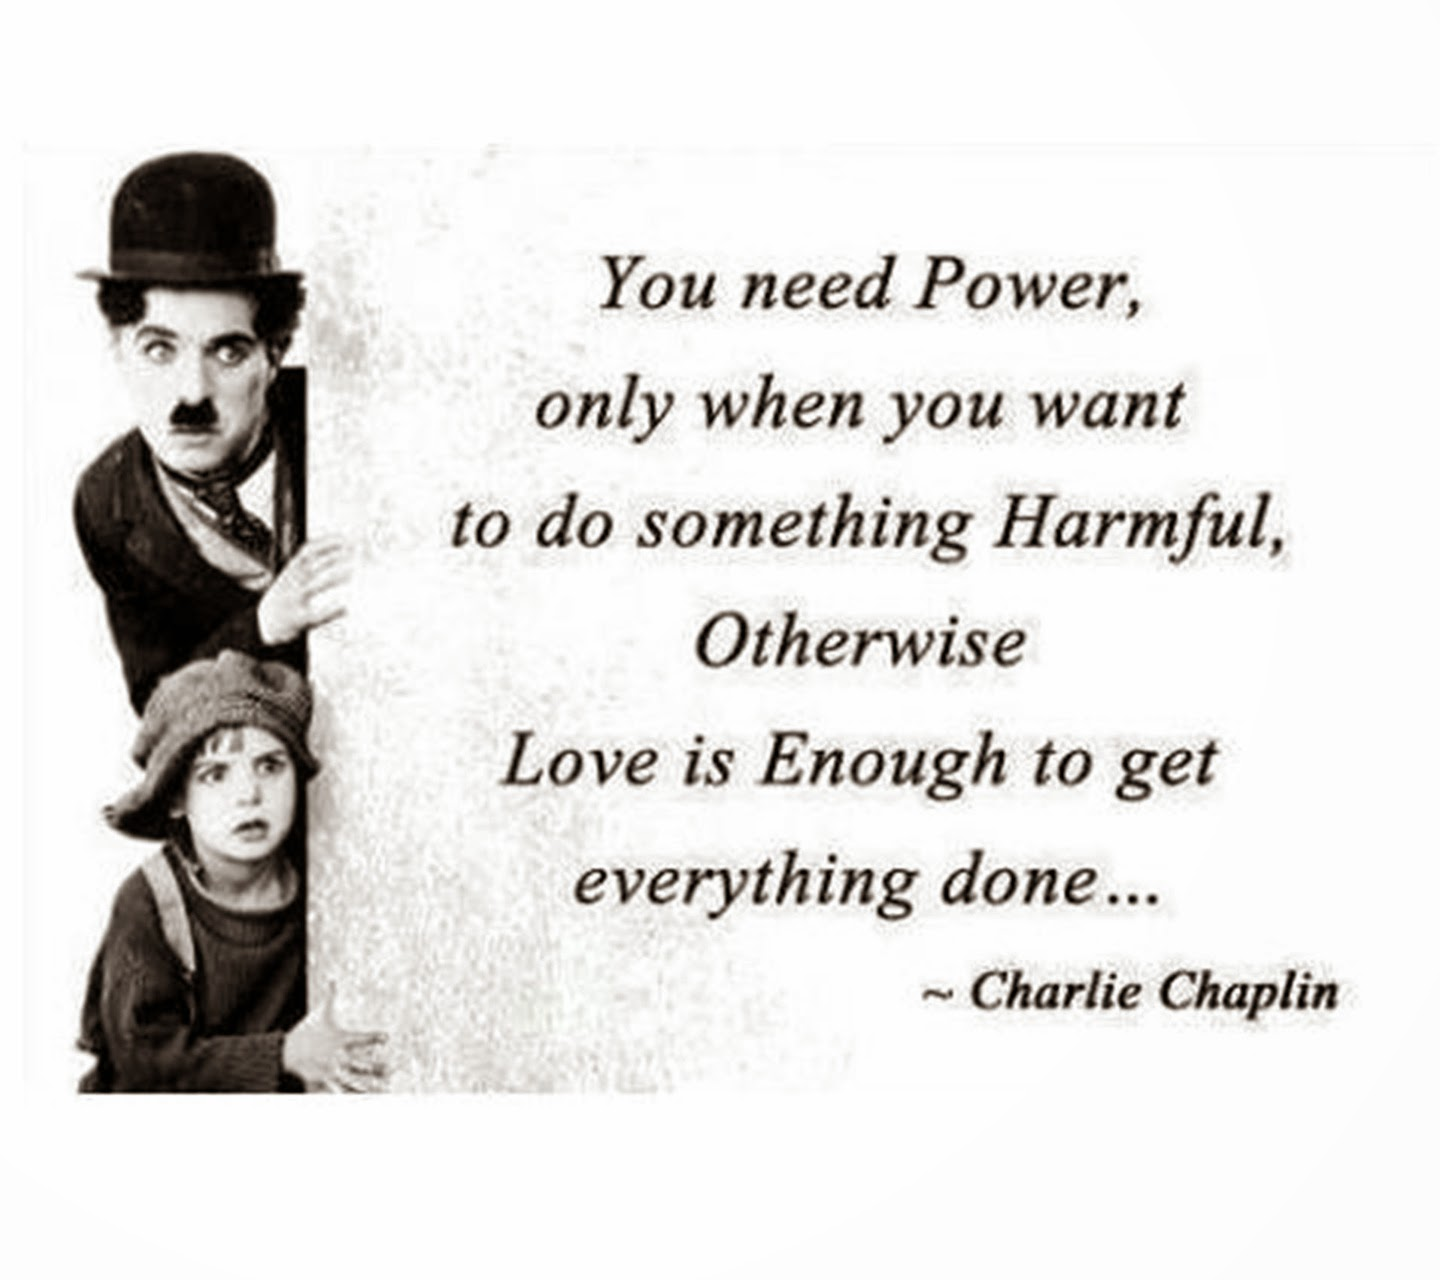 Famous Quotes By Charlie Chaplin: Quotes And Sayings: Charlie Chaplin